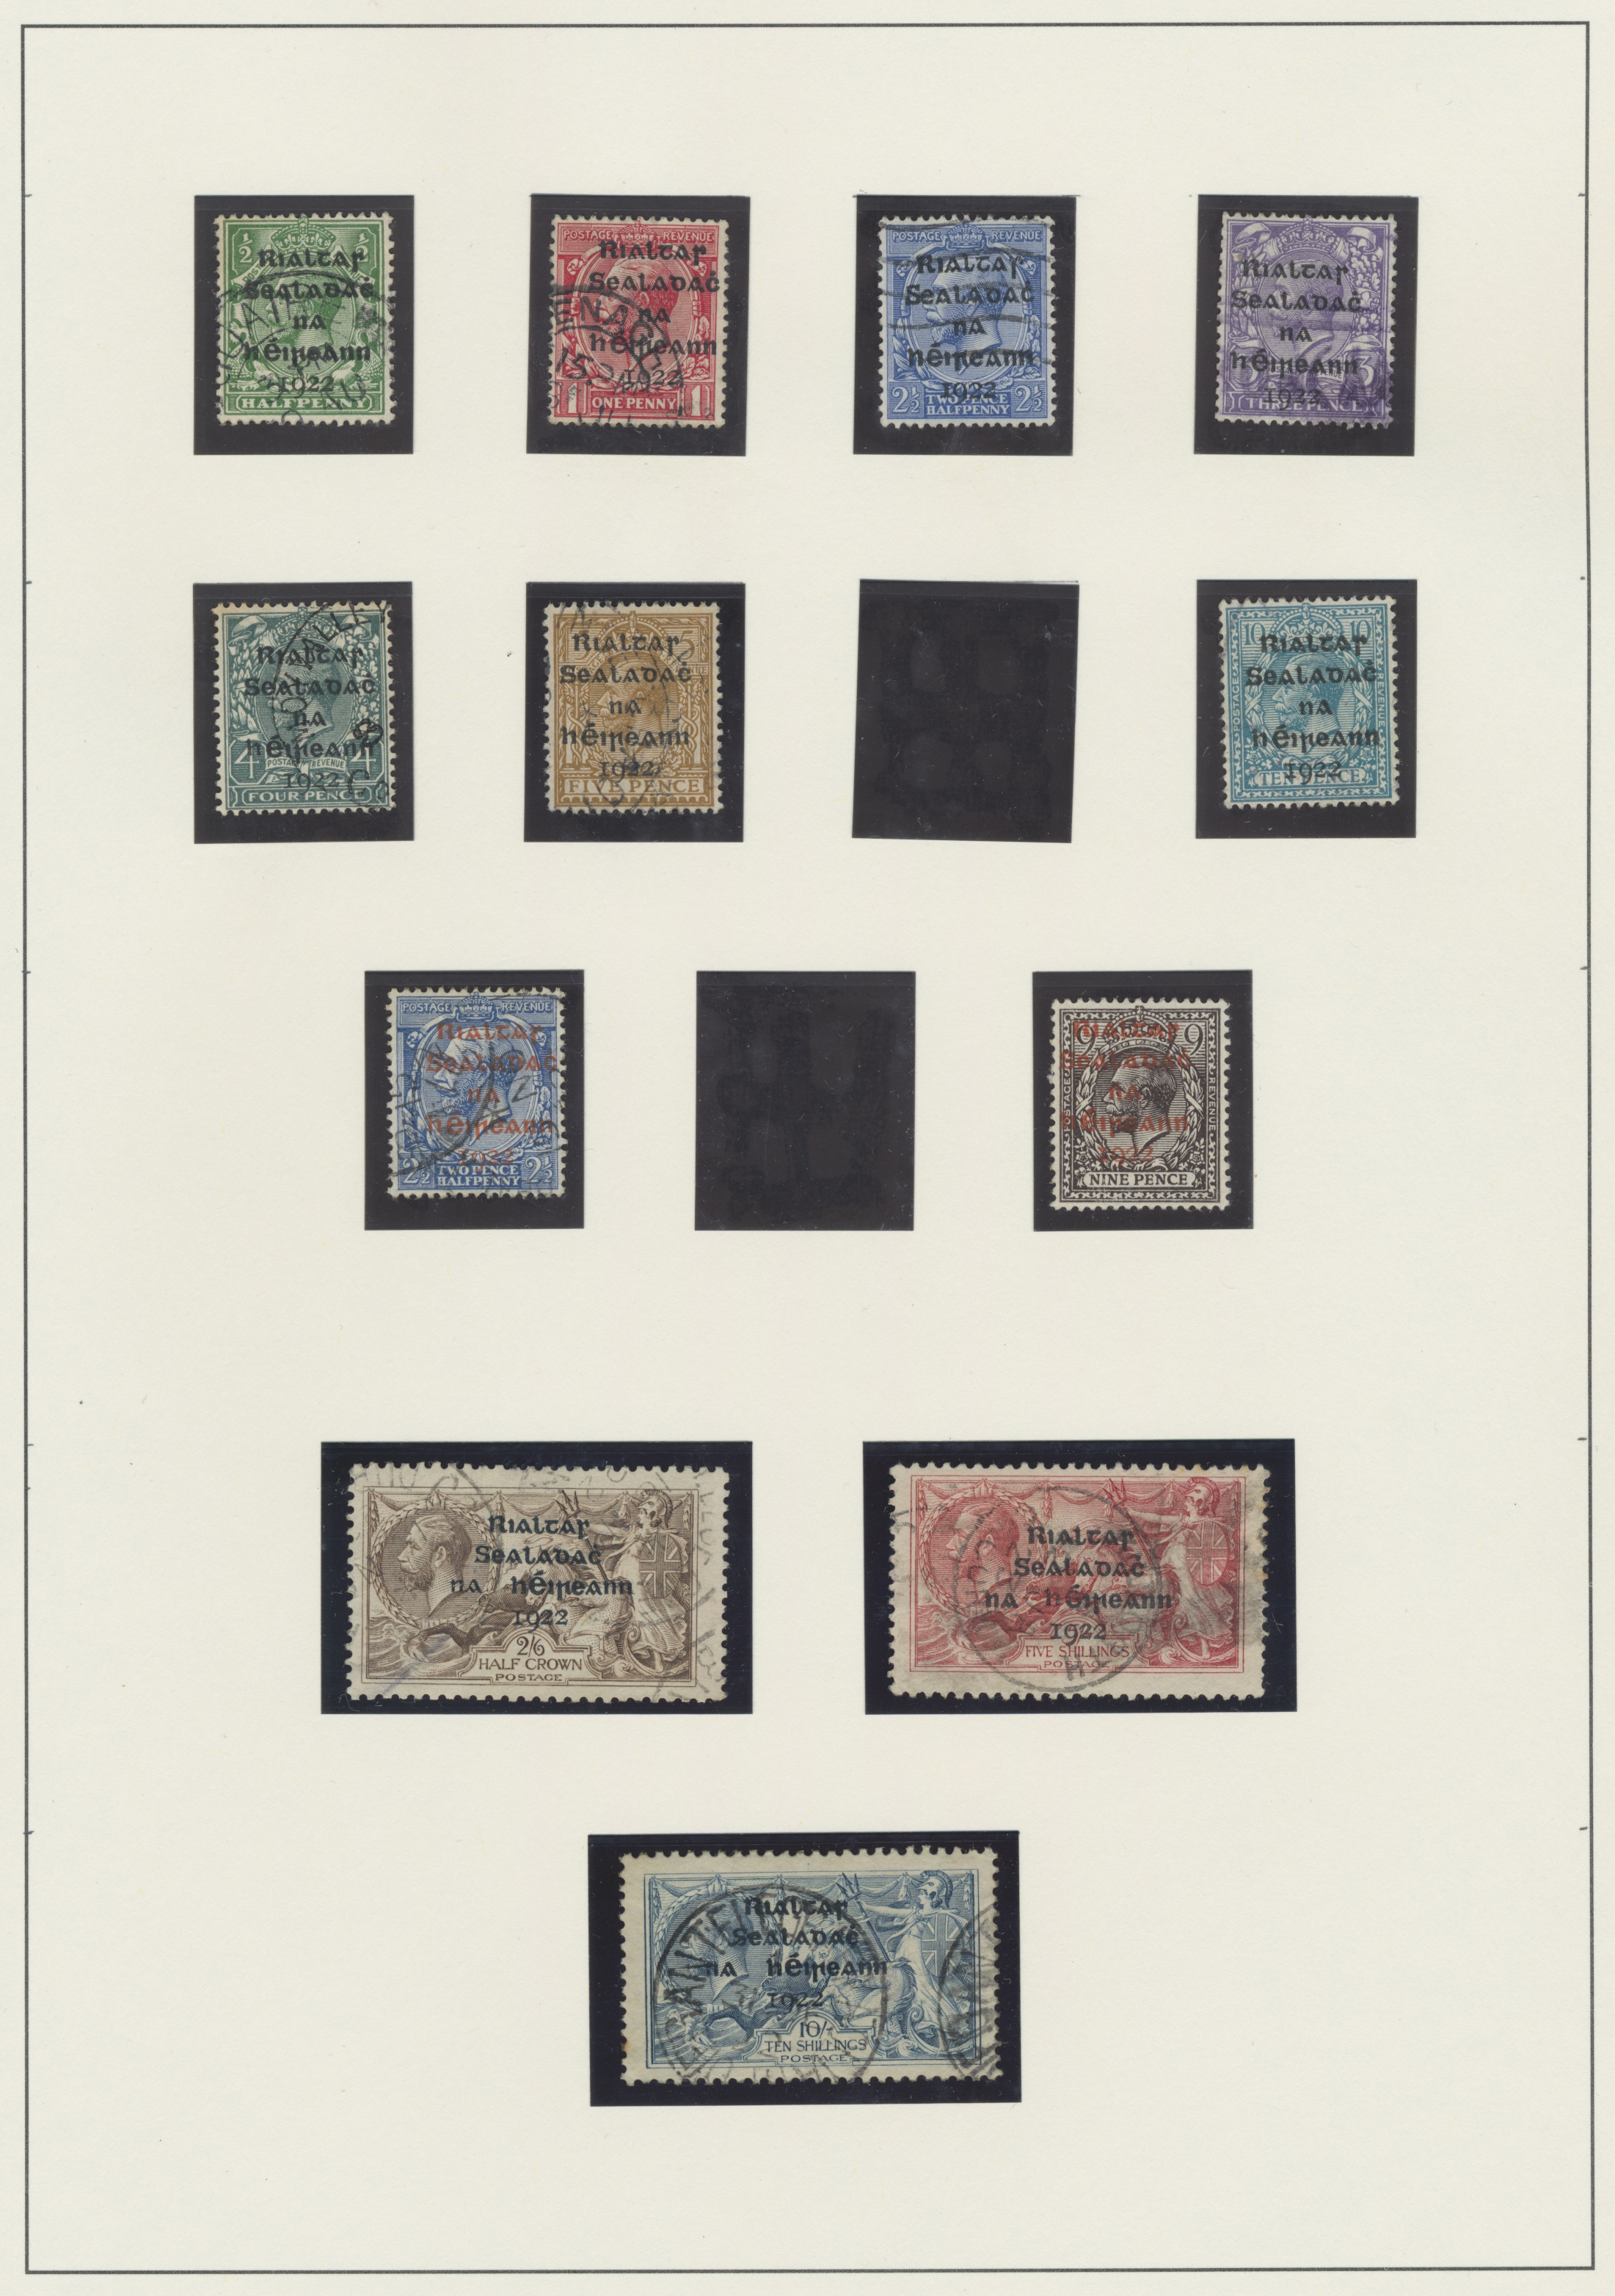 Lot 17152 - irland  -  Auktionshaus Christoph Gärtner GmbH & Co. KG Sale #48 collections Overseas  Airmail / Ship mail & Thematics